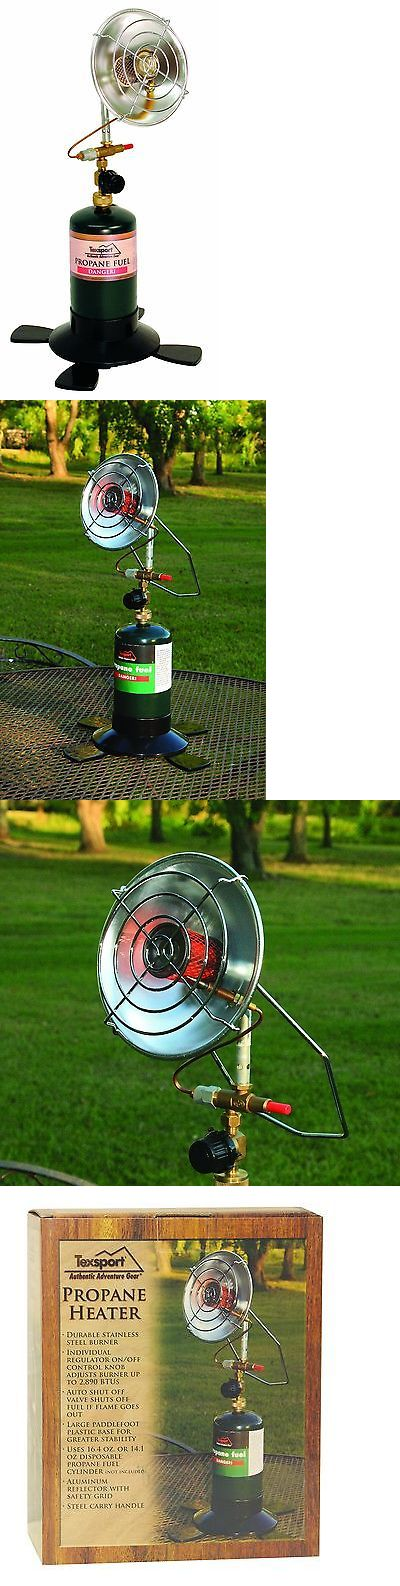 Generators and Heaters 16039: Texsport Portable Outdoor Propane Heater New BUY IT NOW ONLY: $41.47